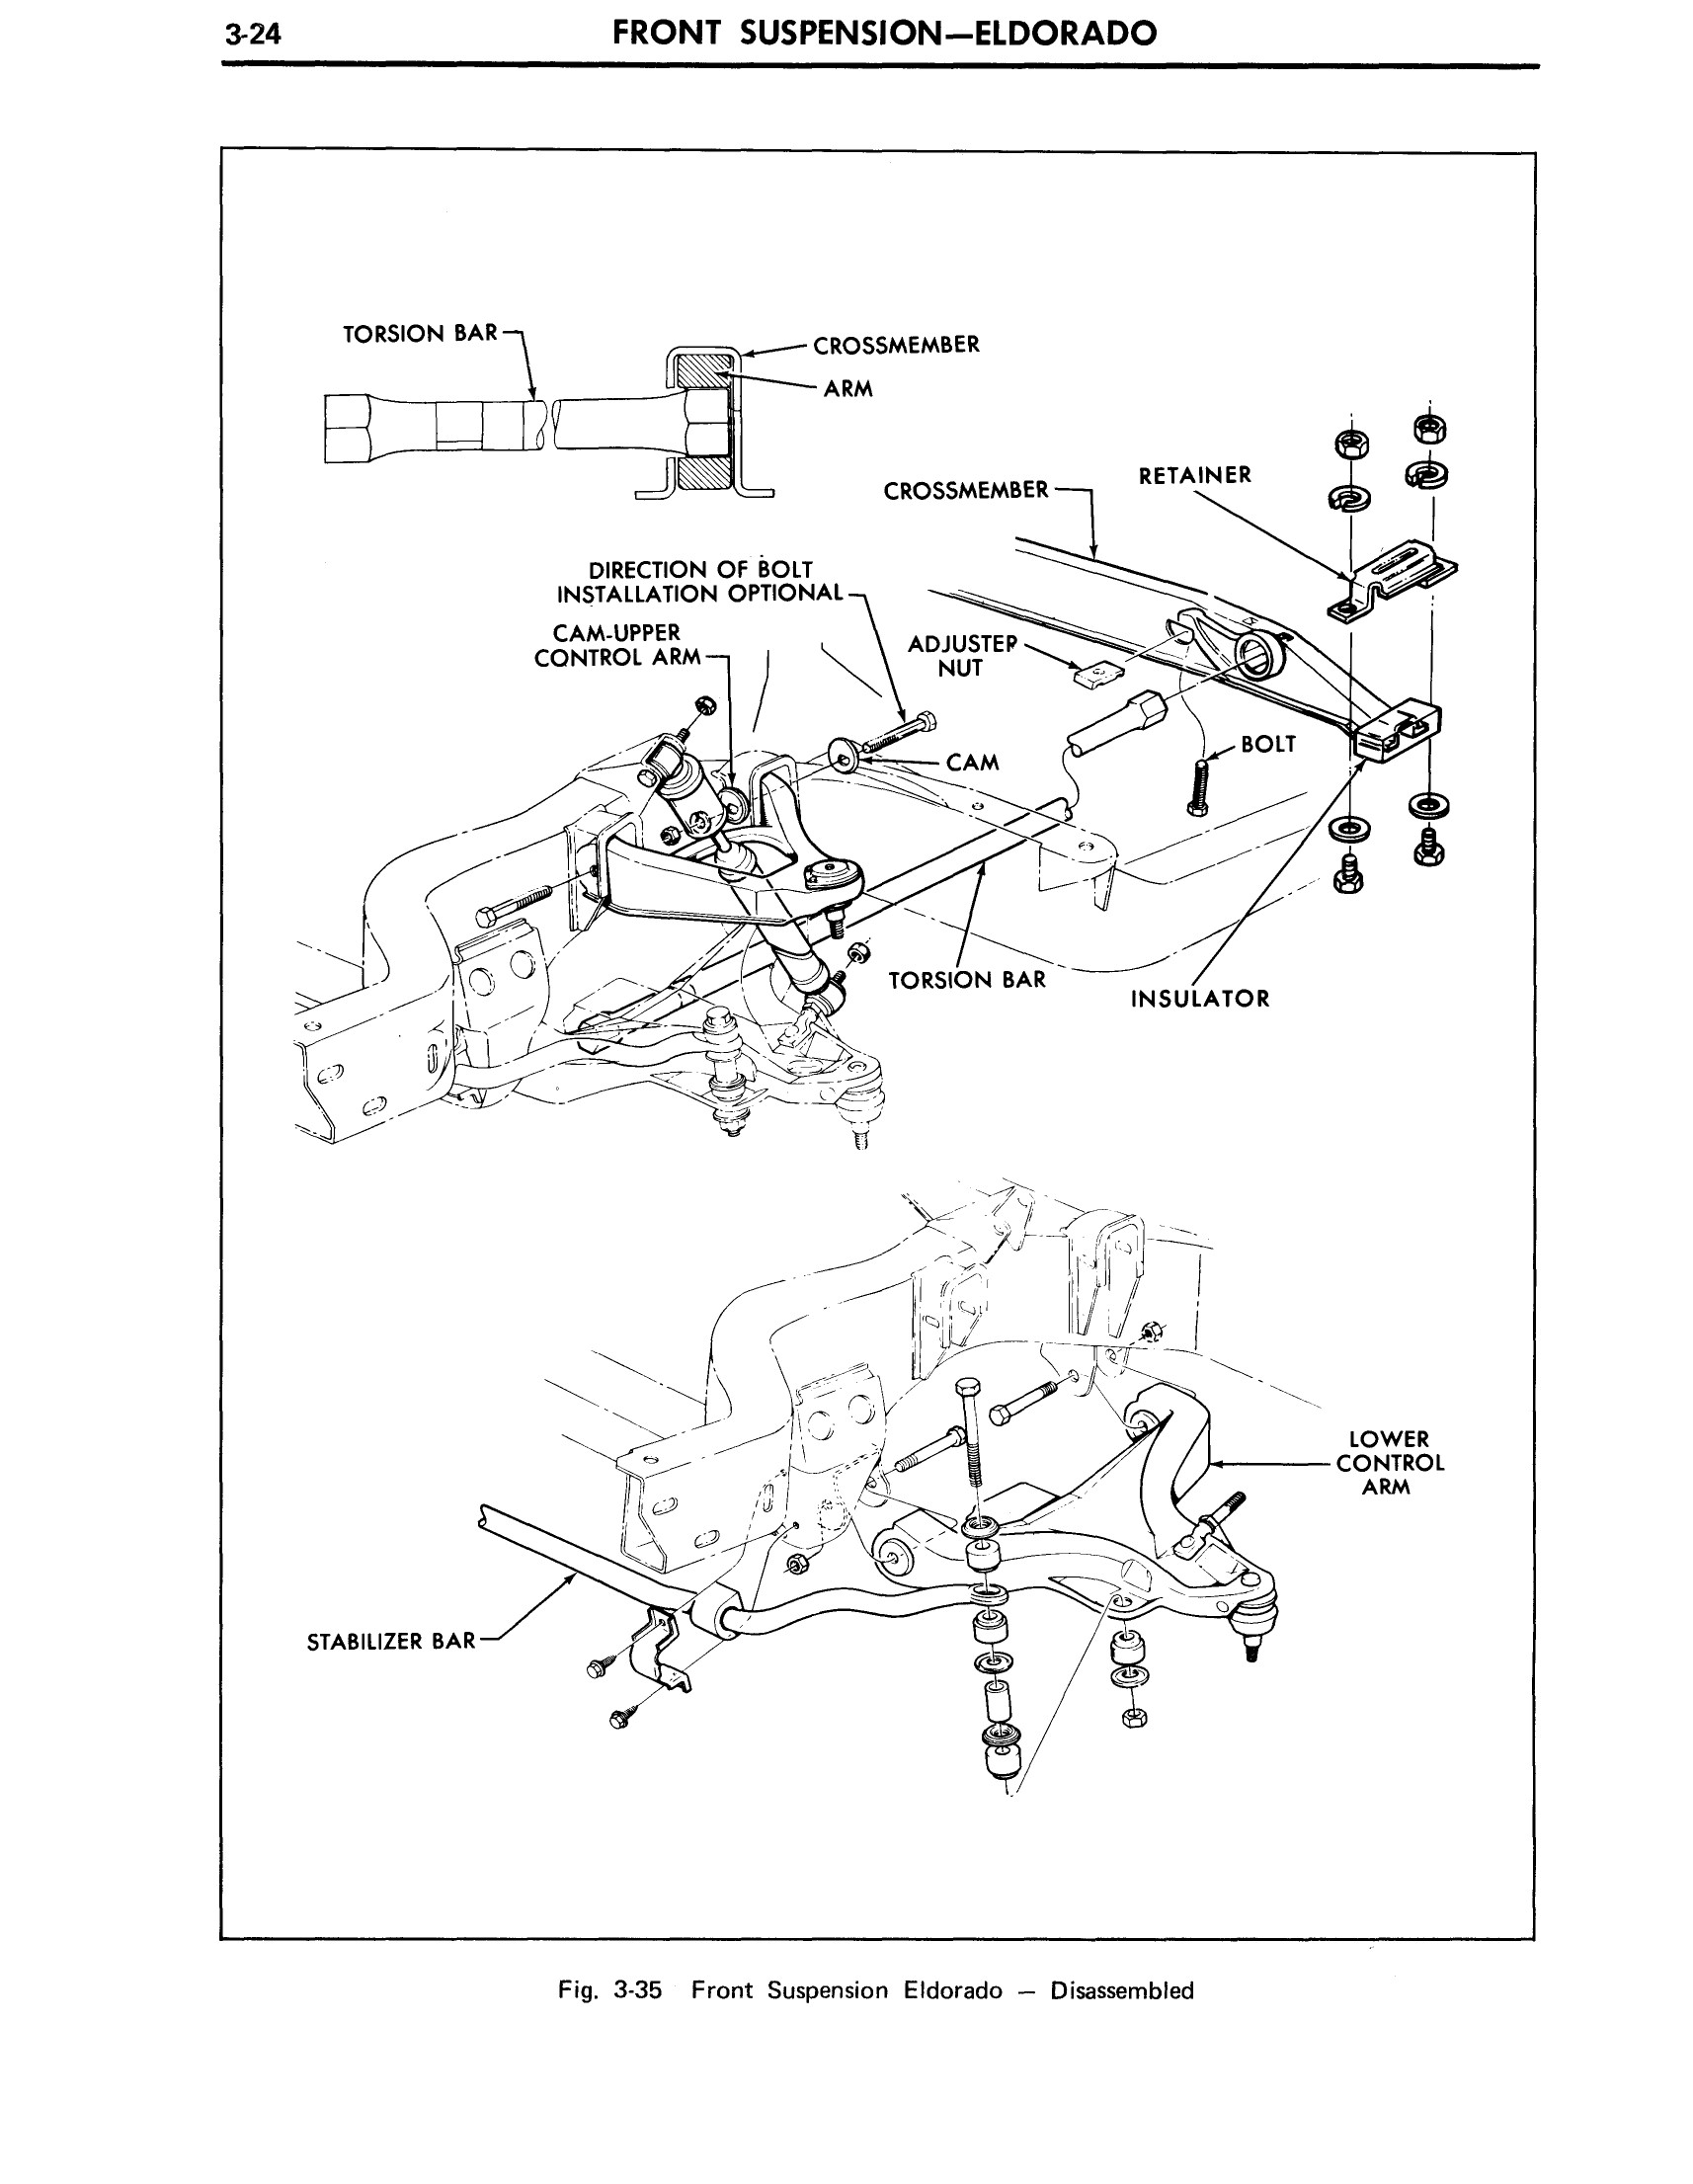 1971 Cadillac Shop Manual- Front Suspension Page 24 of 56